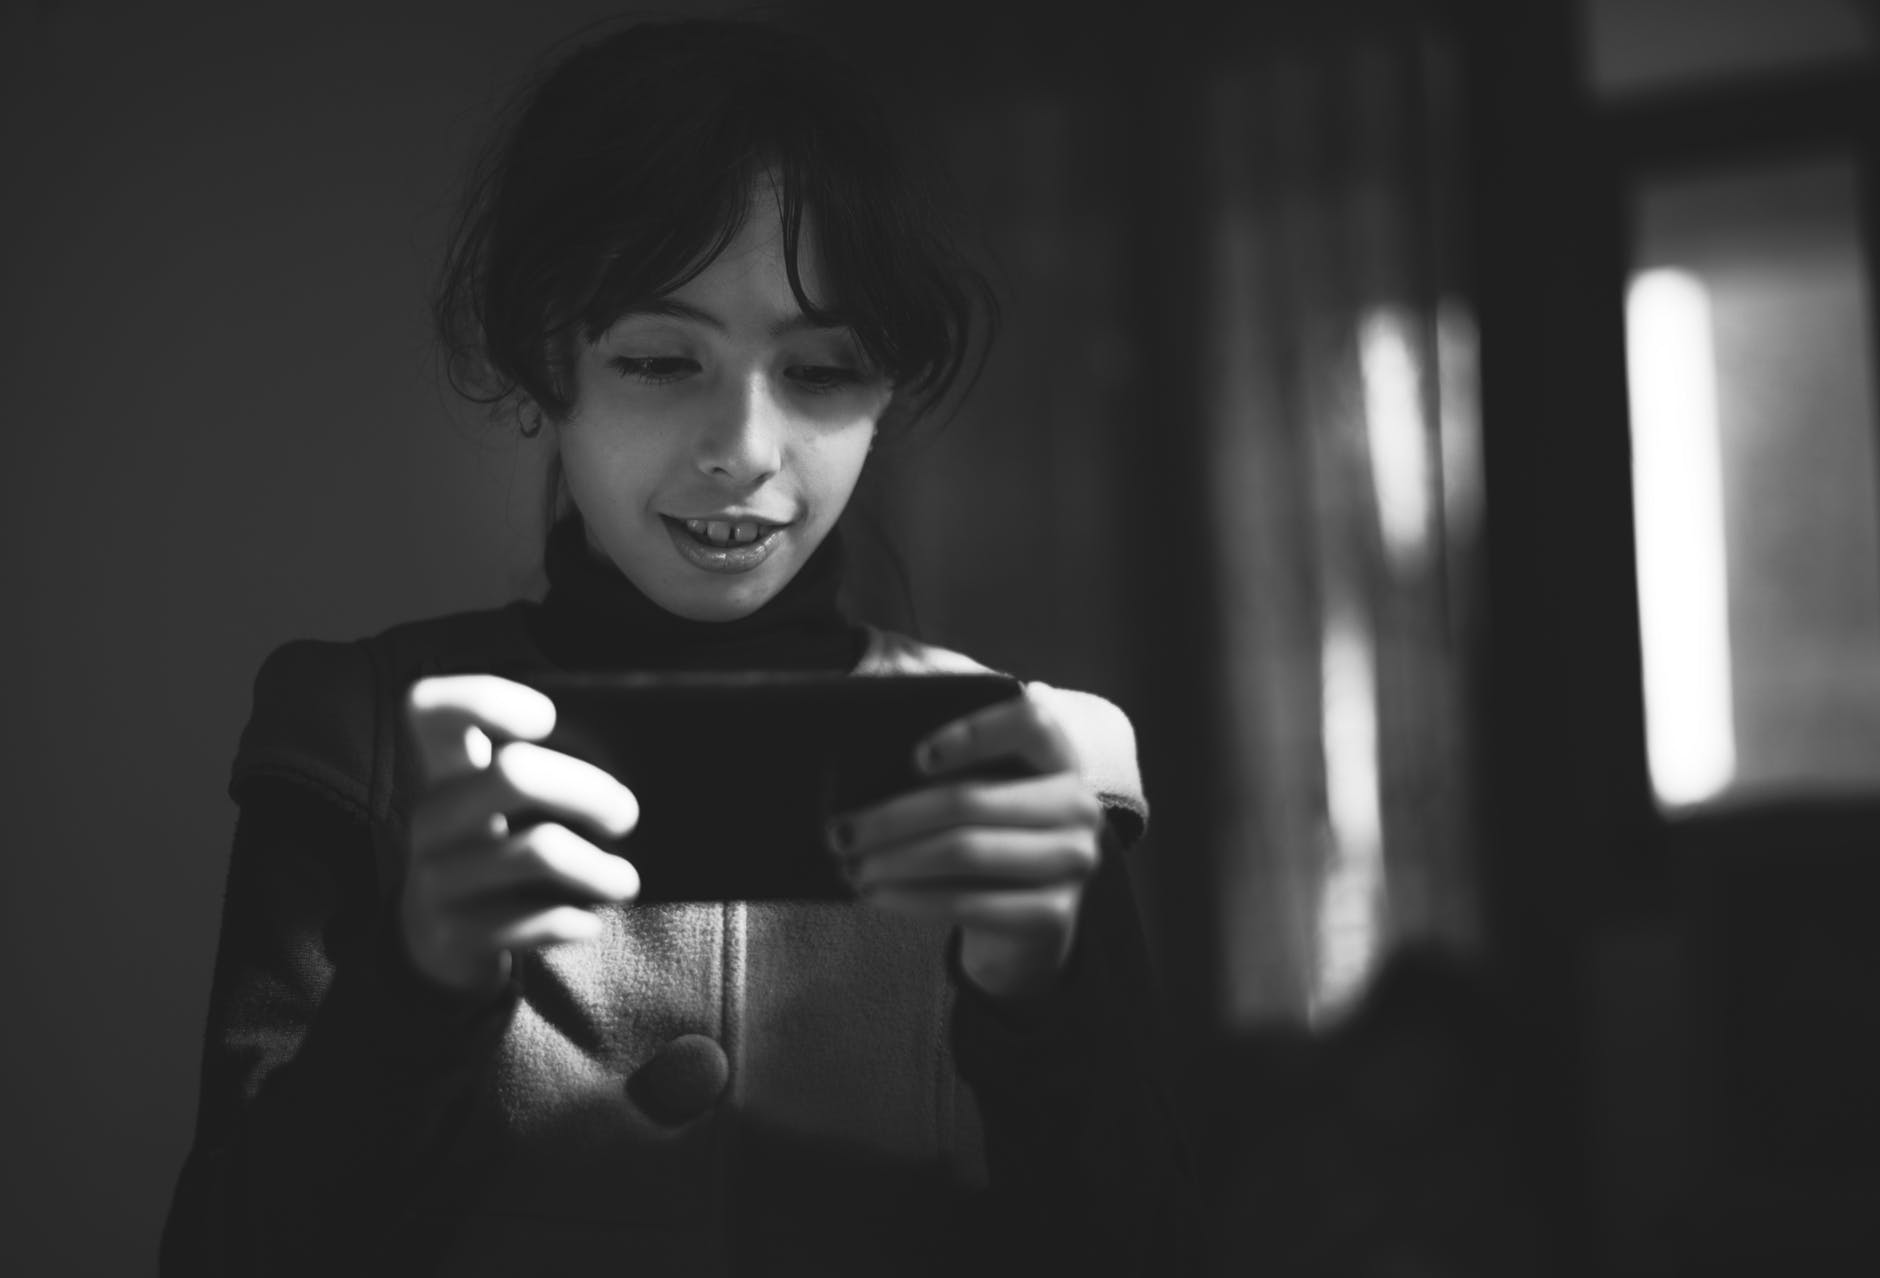 grayscale photography of girl using smartphone - 4 Child Care Trends to Look Out for